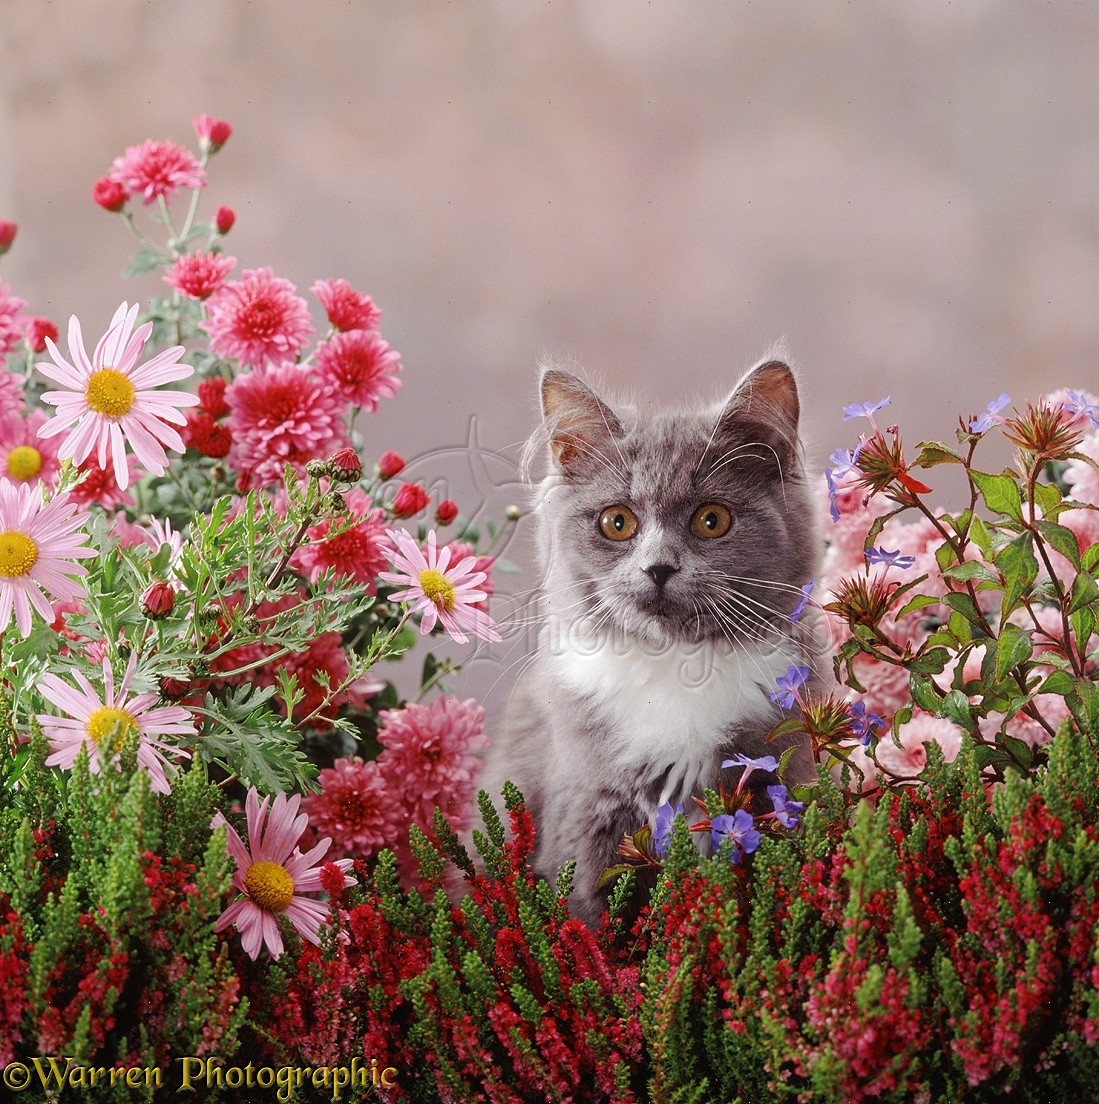 Grey and white kitten among pretty flowers photo wp37519 grey and white kitten among pretty flowers mightylinksfo Image collections